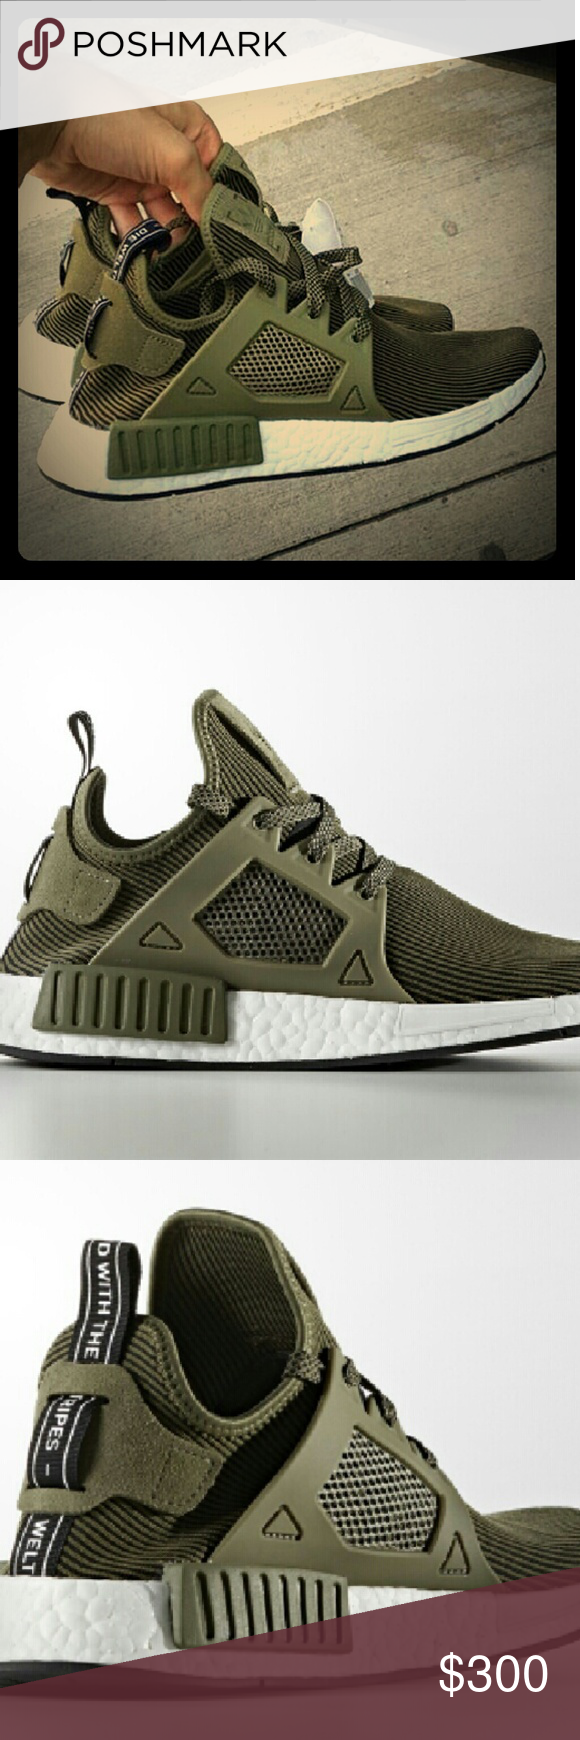 hot sales 1c9e6 fb240 Adidas NMD XR1 GLITCH CAMO Adidas Ultra Boost